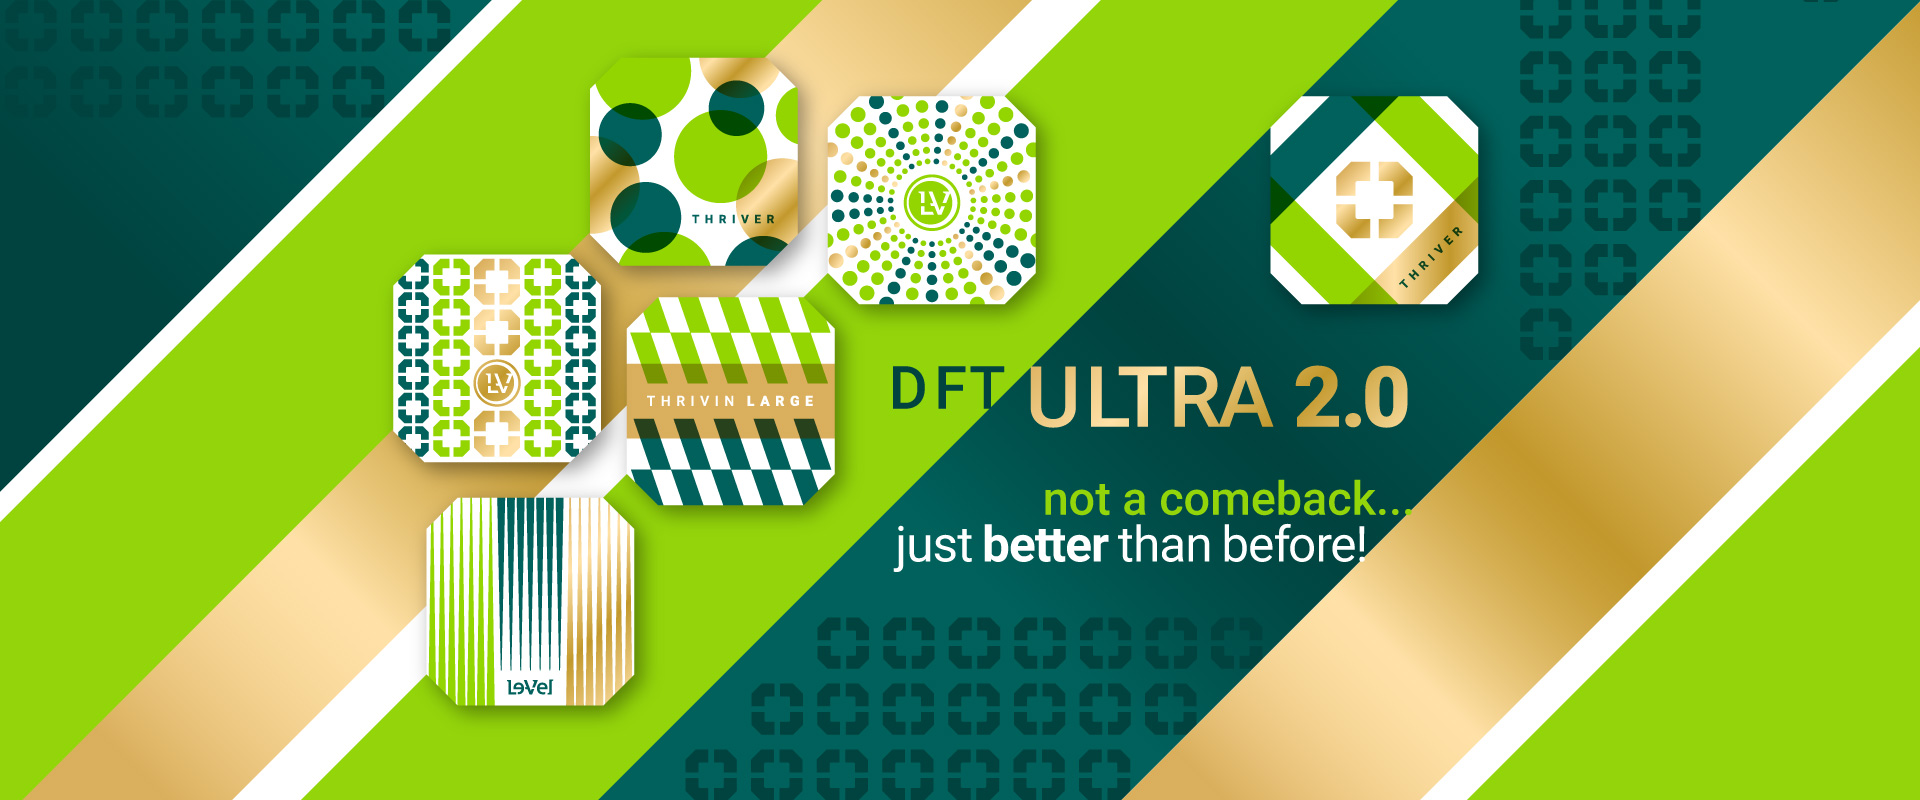 THRIVE DFT Ultra 2.0